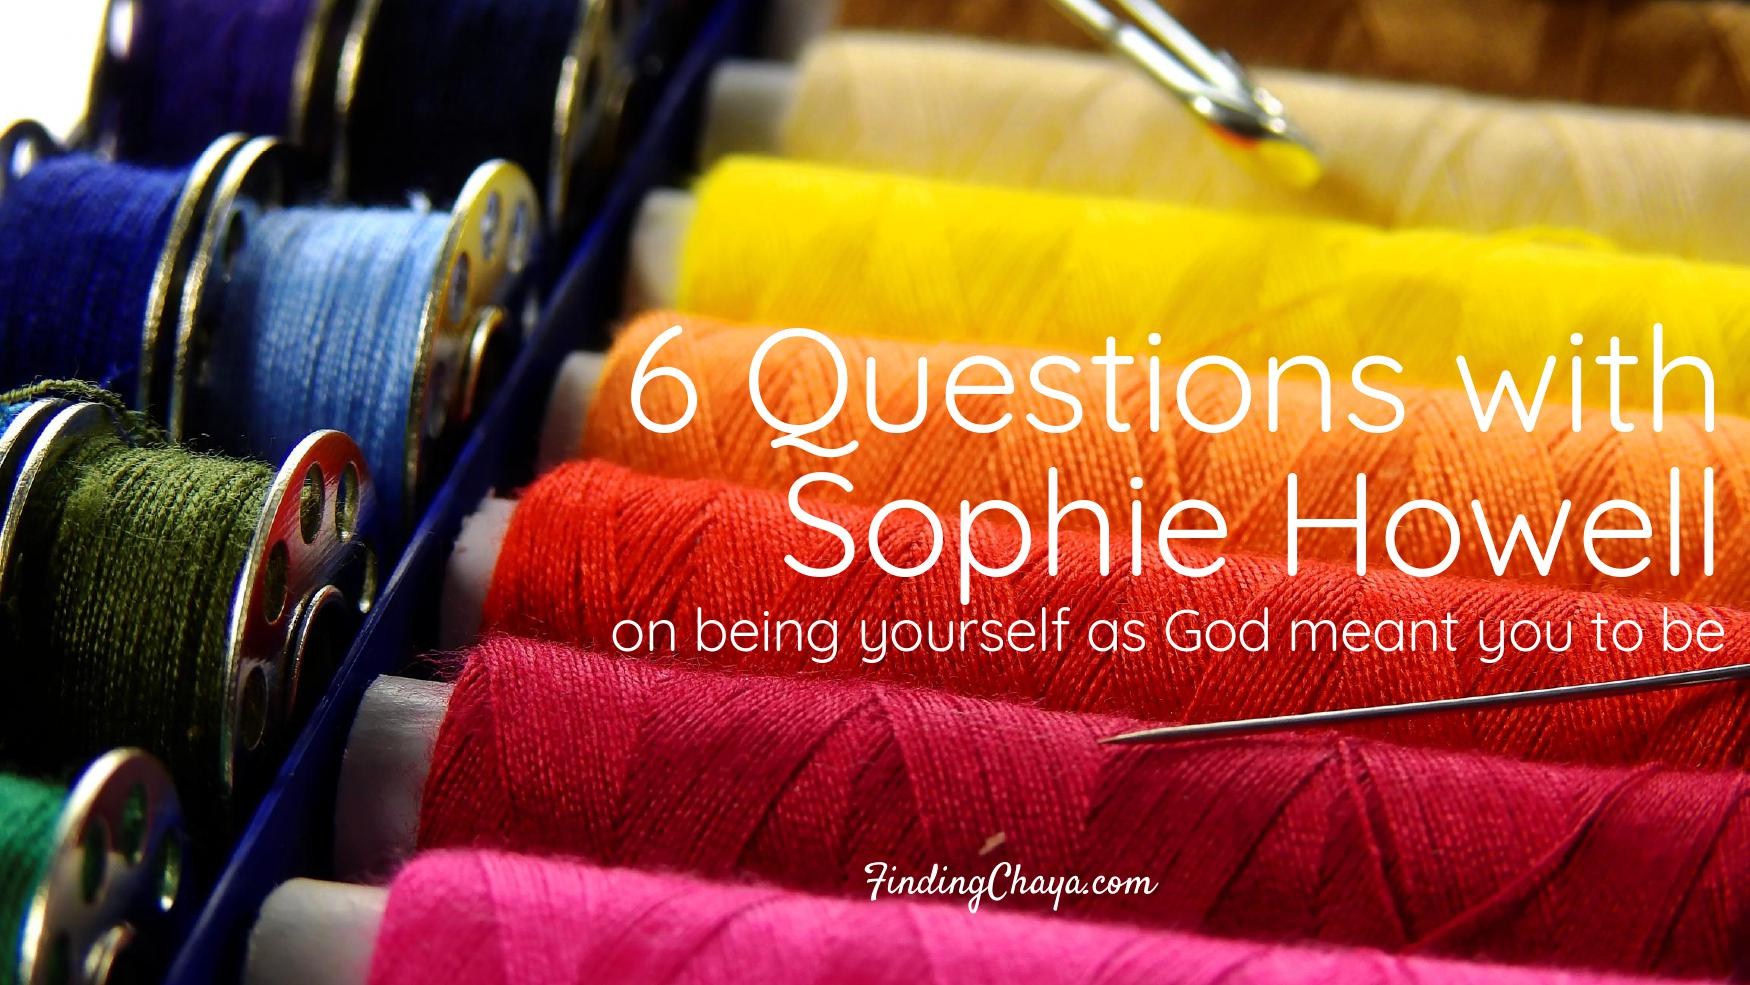 6 Questions with Sophie Howell